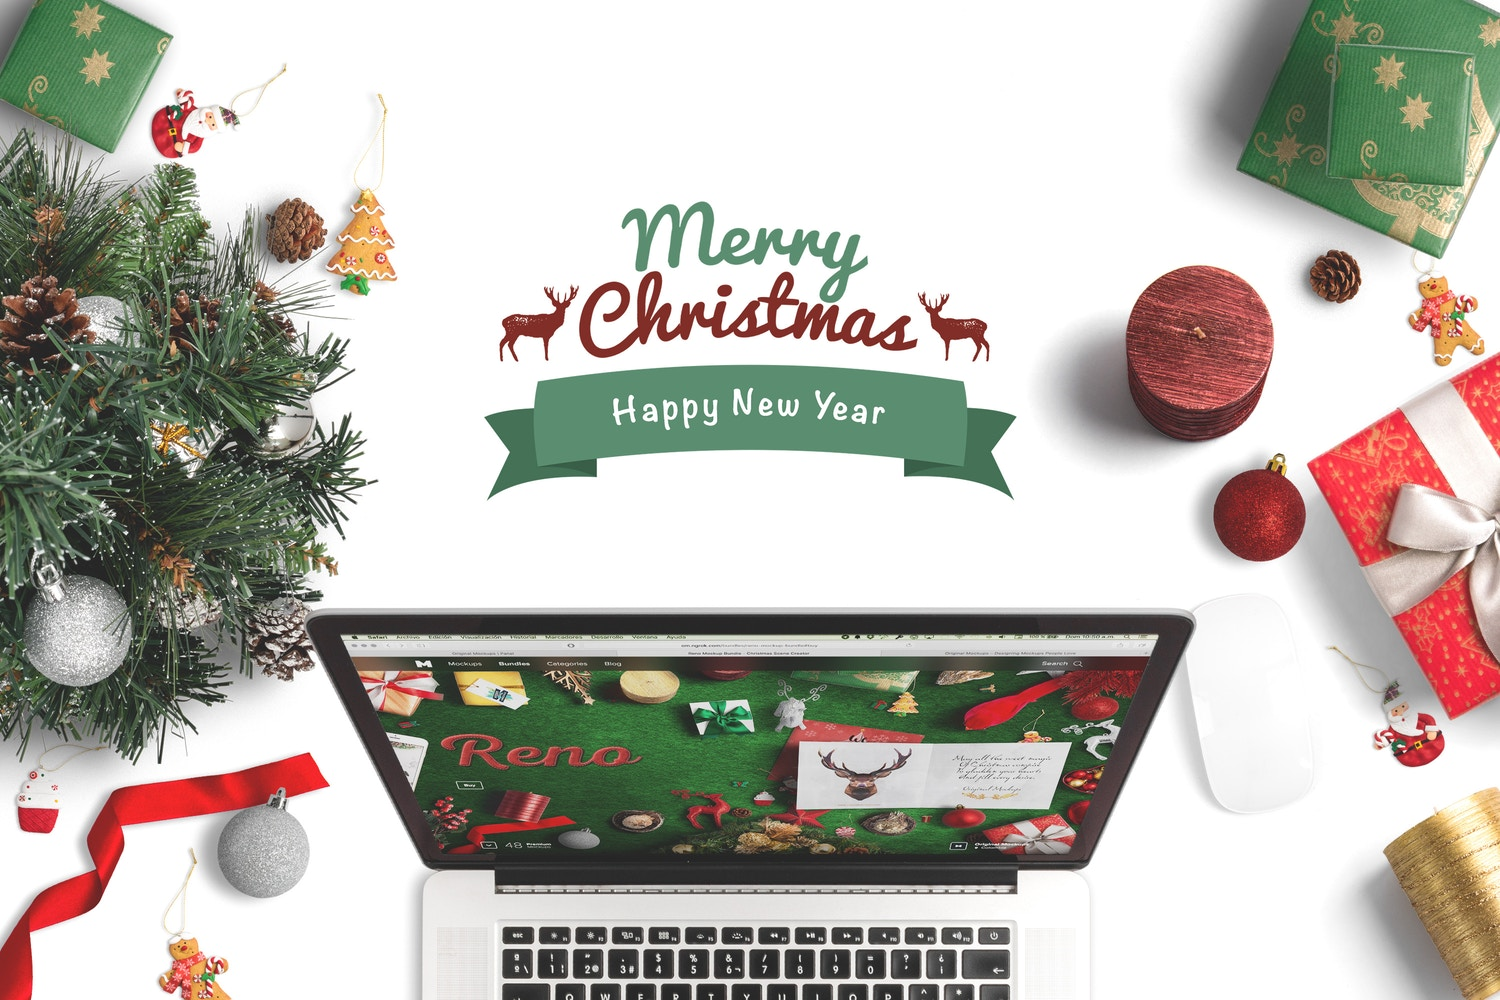 Christmas Header And Hero Scene Mockup 09 by Original Mockups on Original Mockups